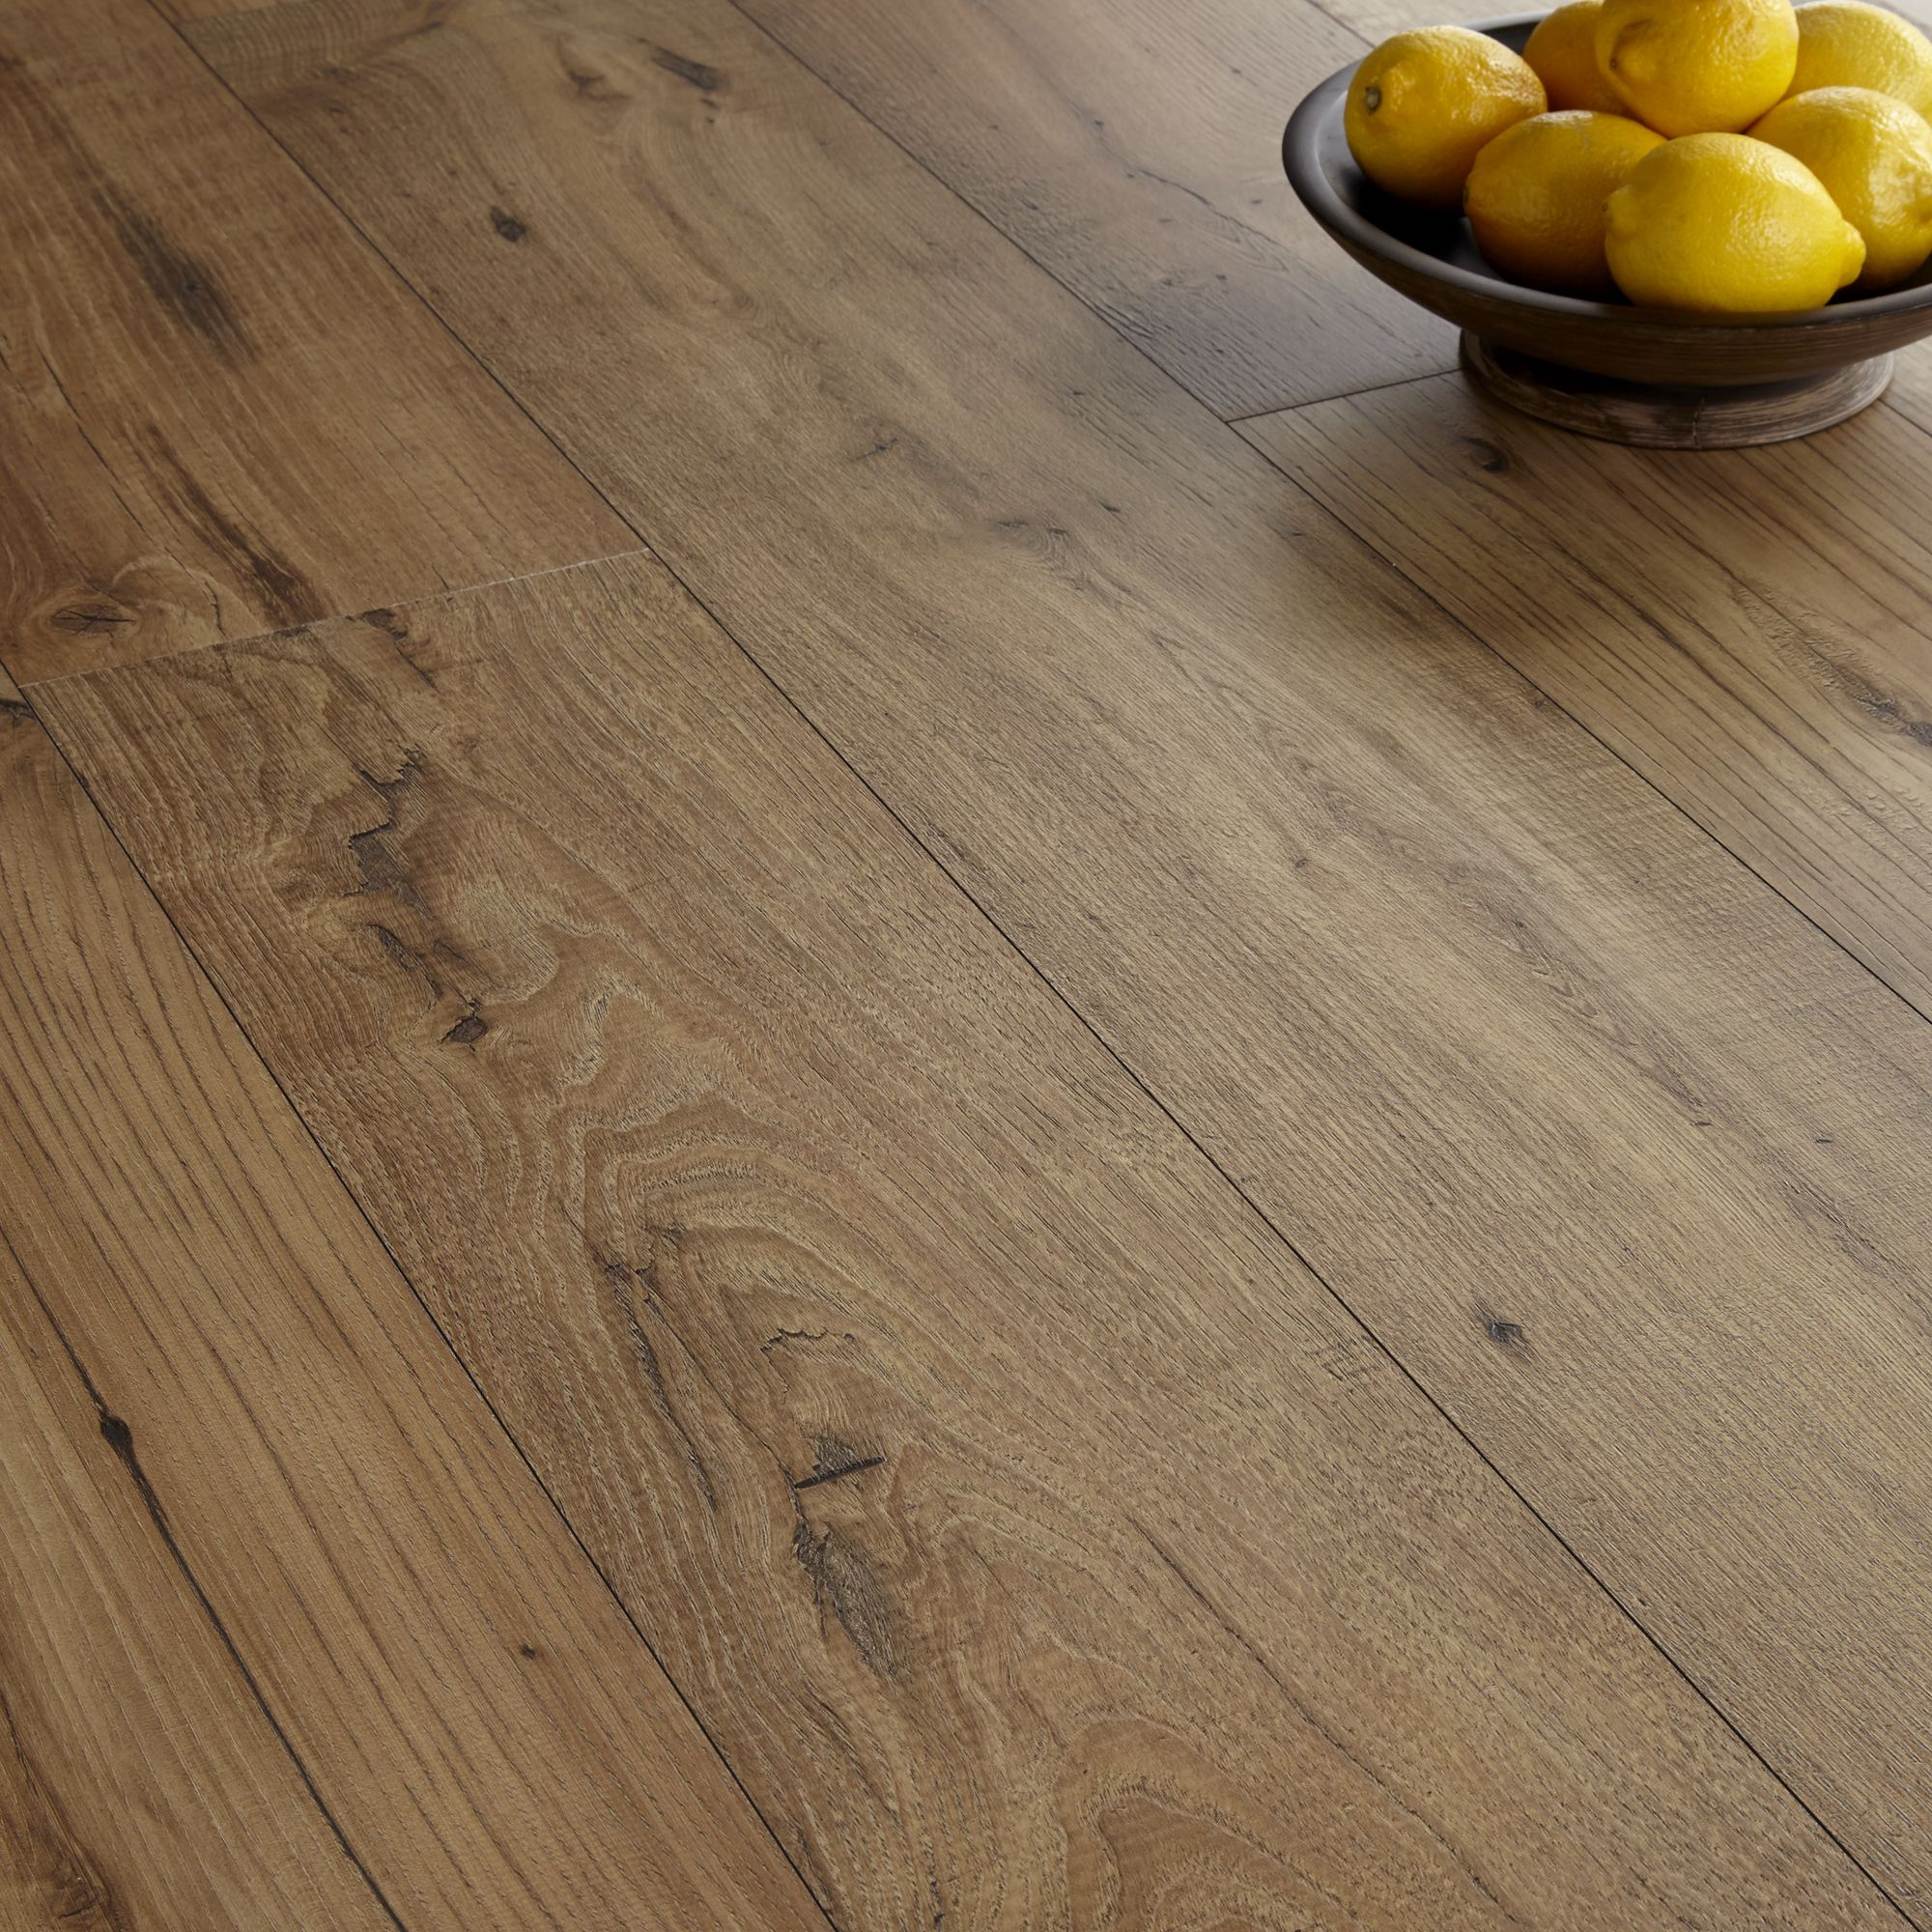 Quickstep Espressivo Natural Chestnut Effect Laminate Flooring 1.83 m Pack  | Departments | DIY at B&Q